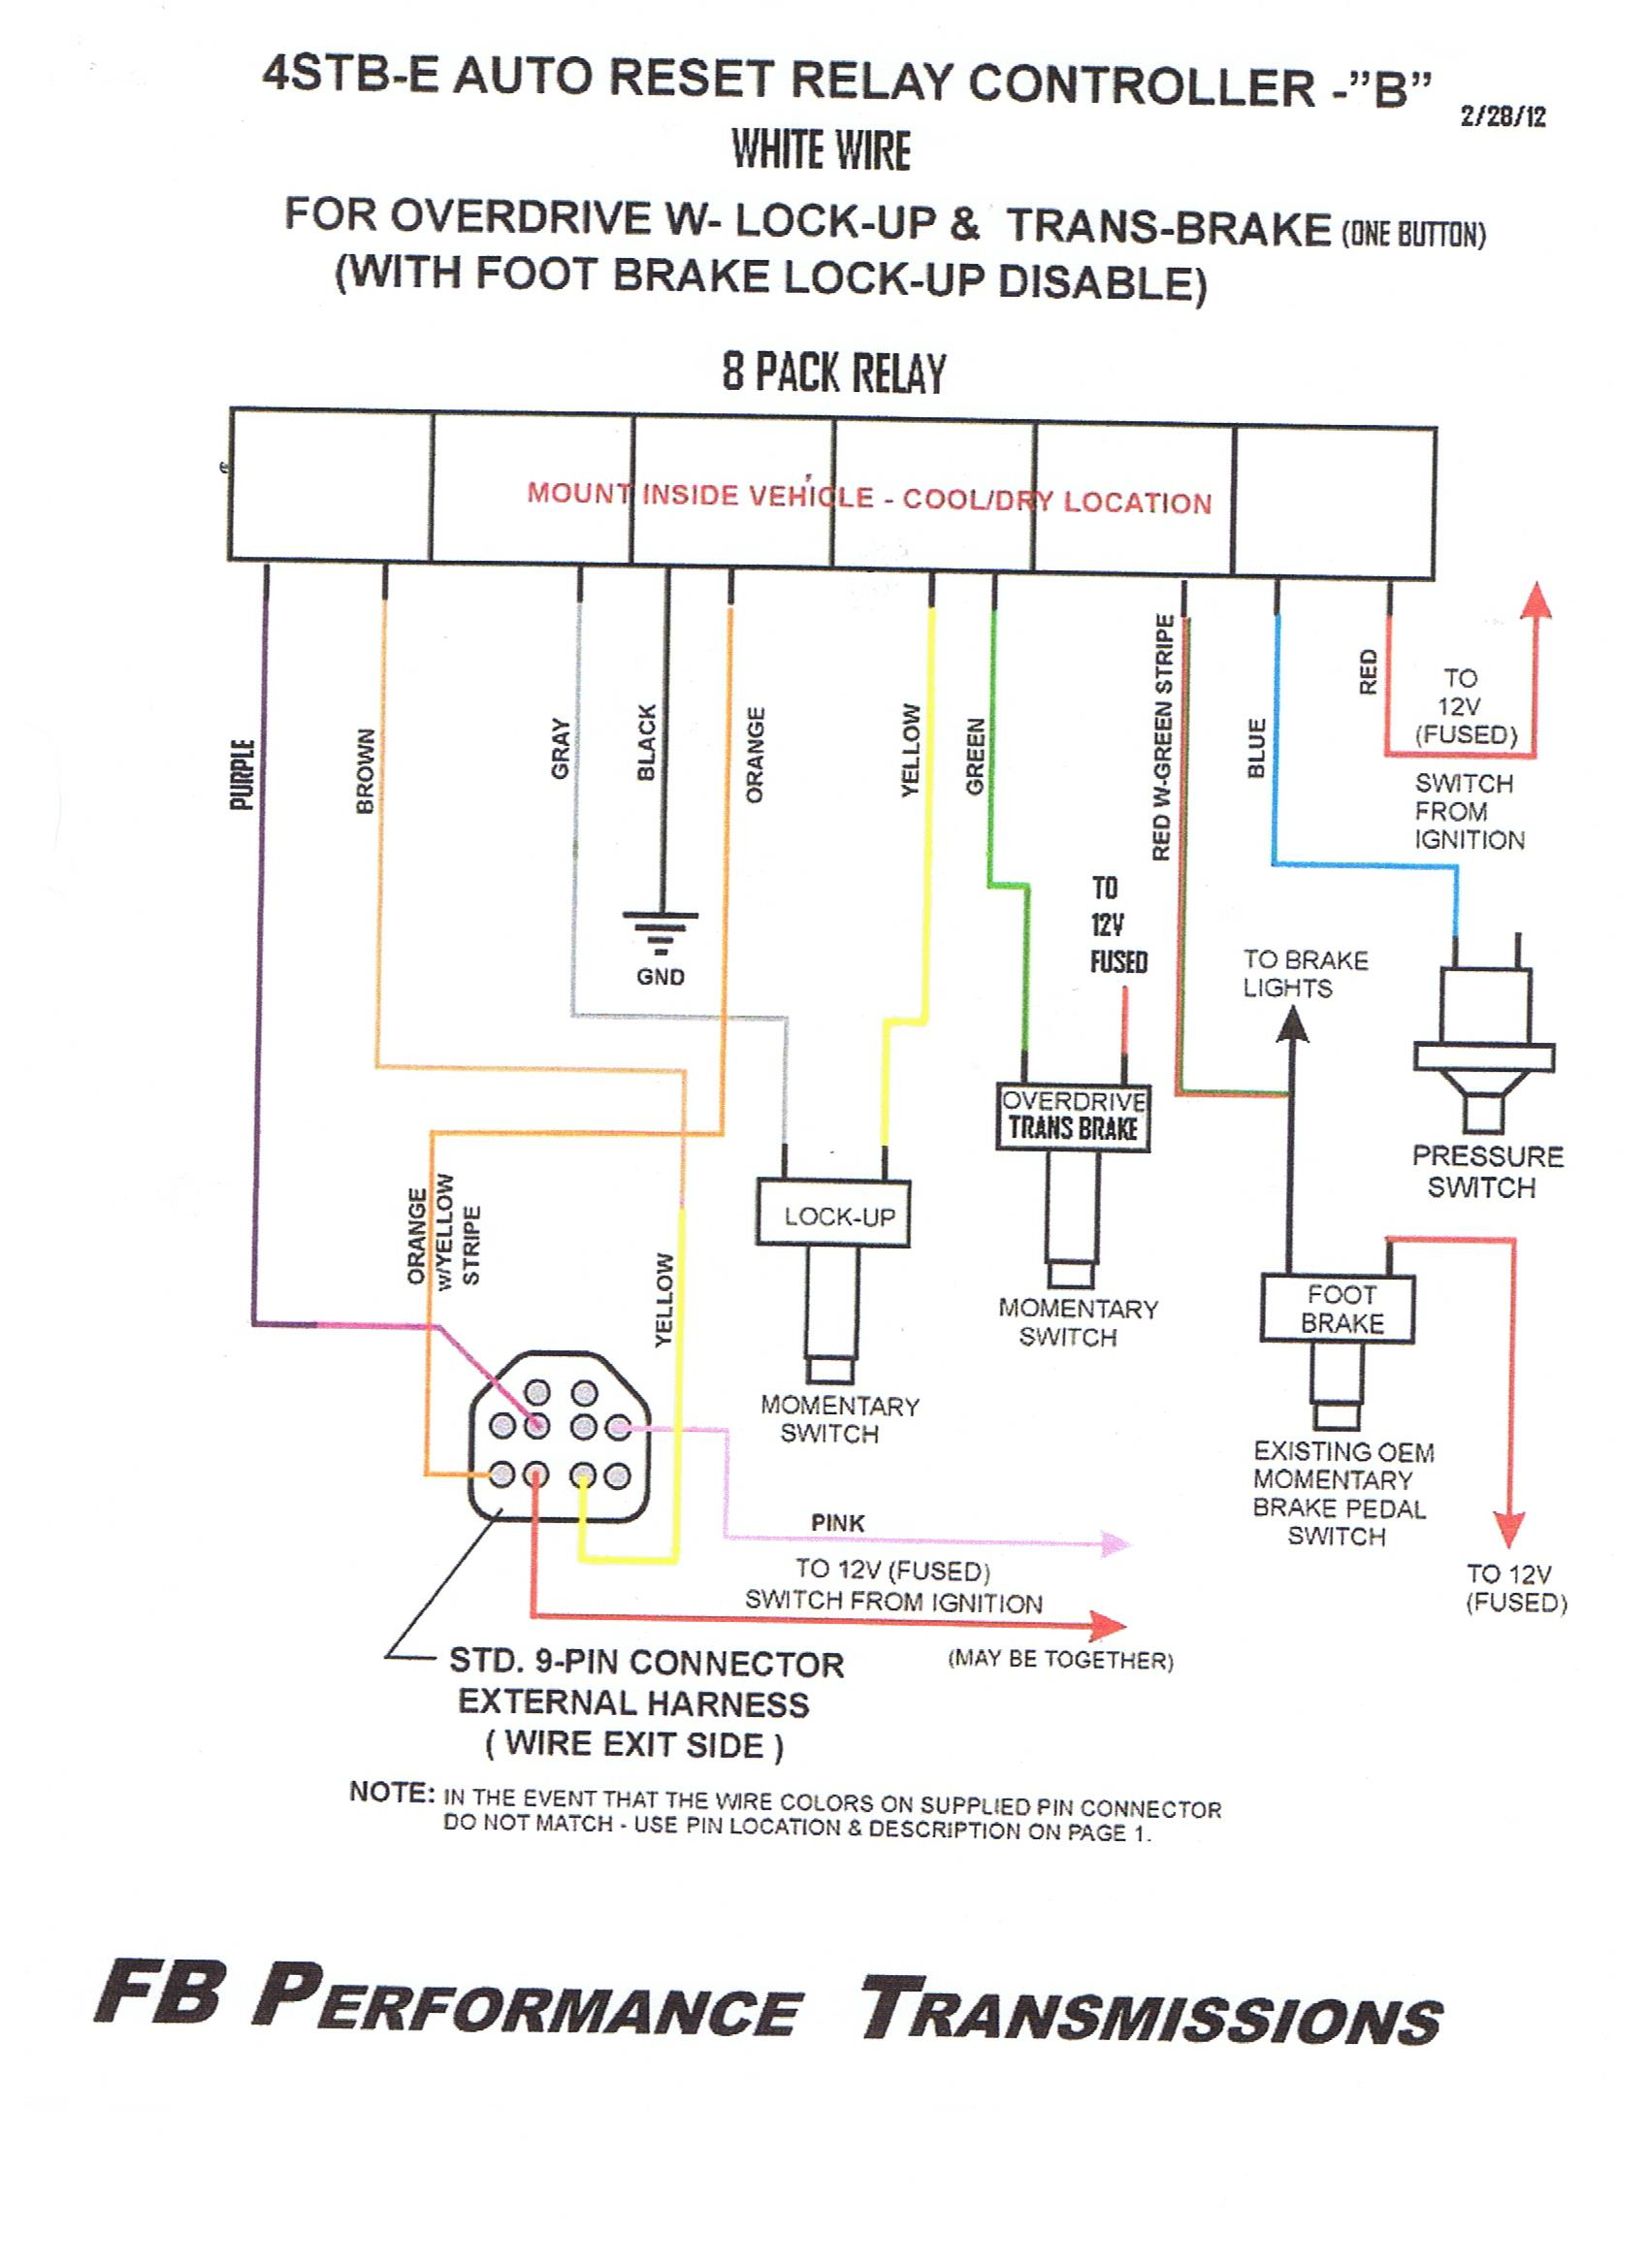 technical advice wiring and operation 9 pin feb 2012